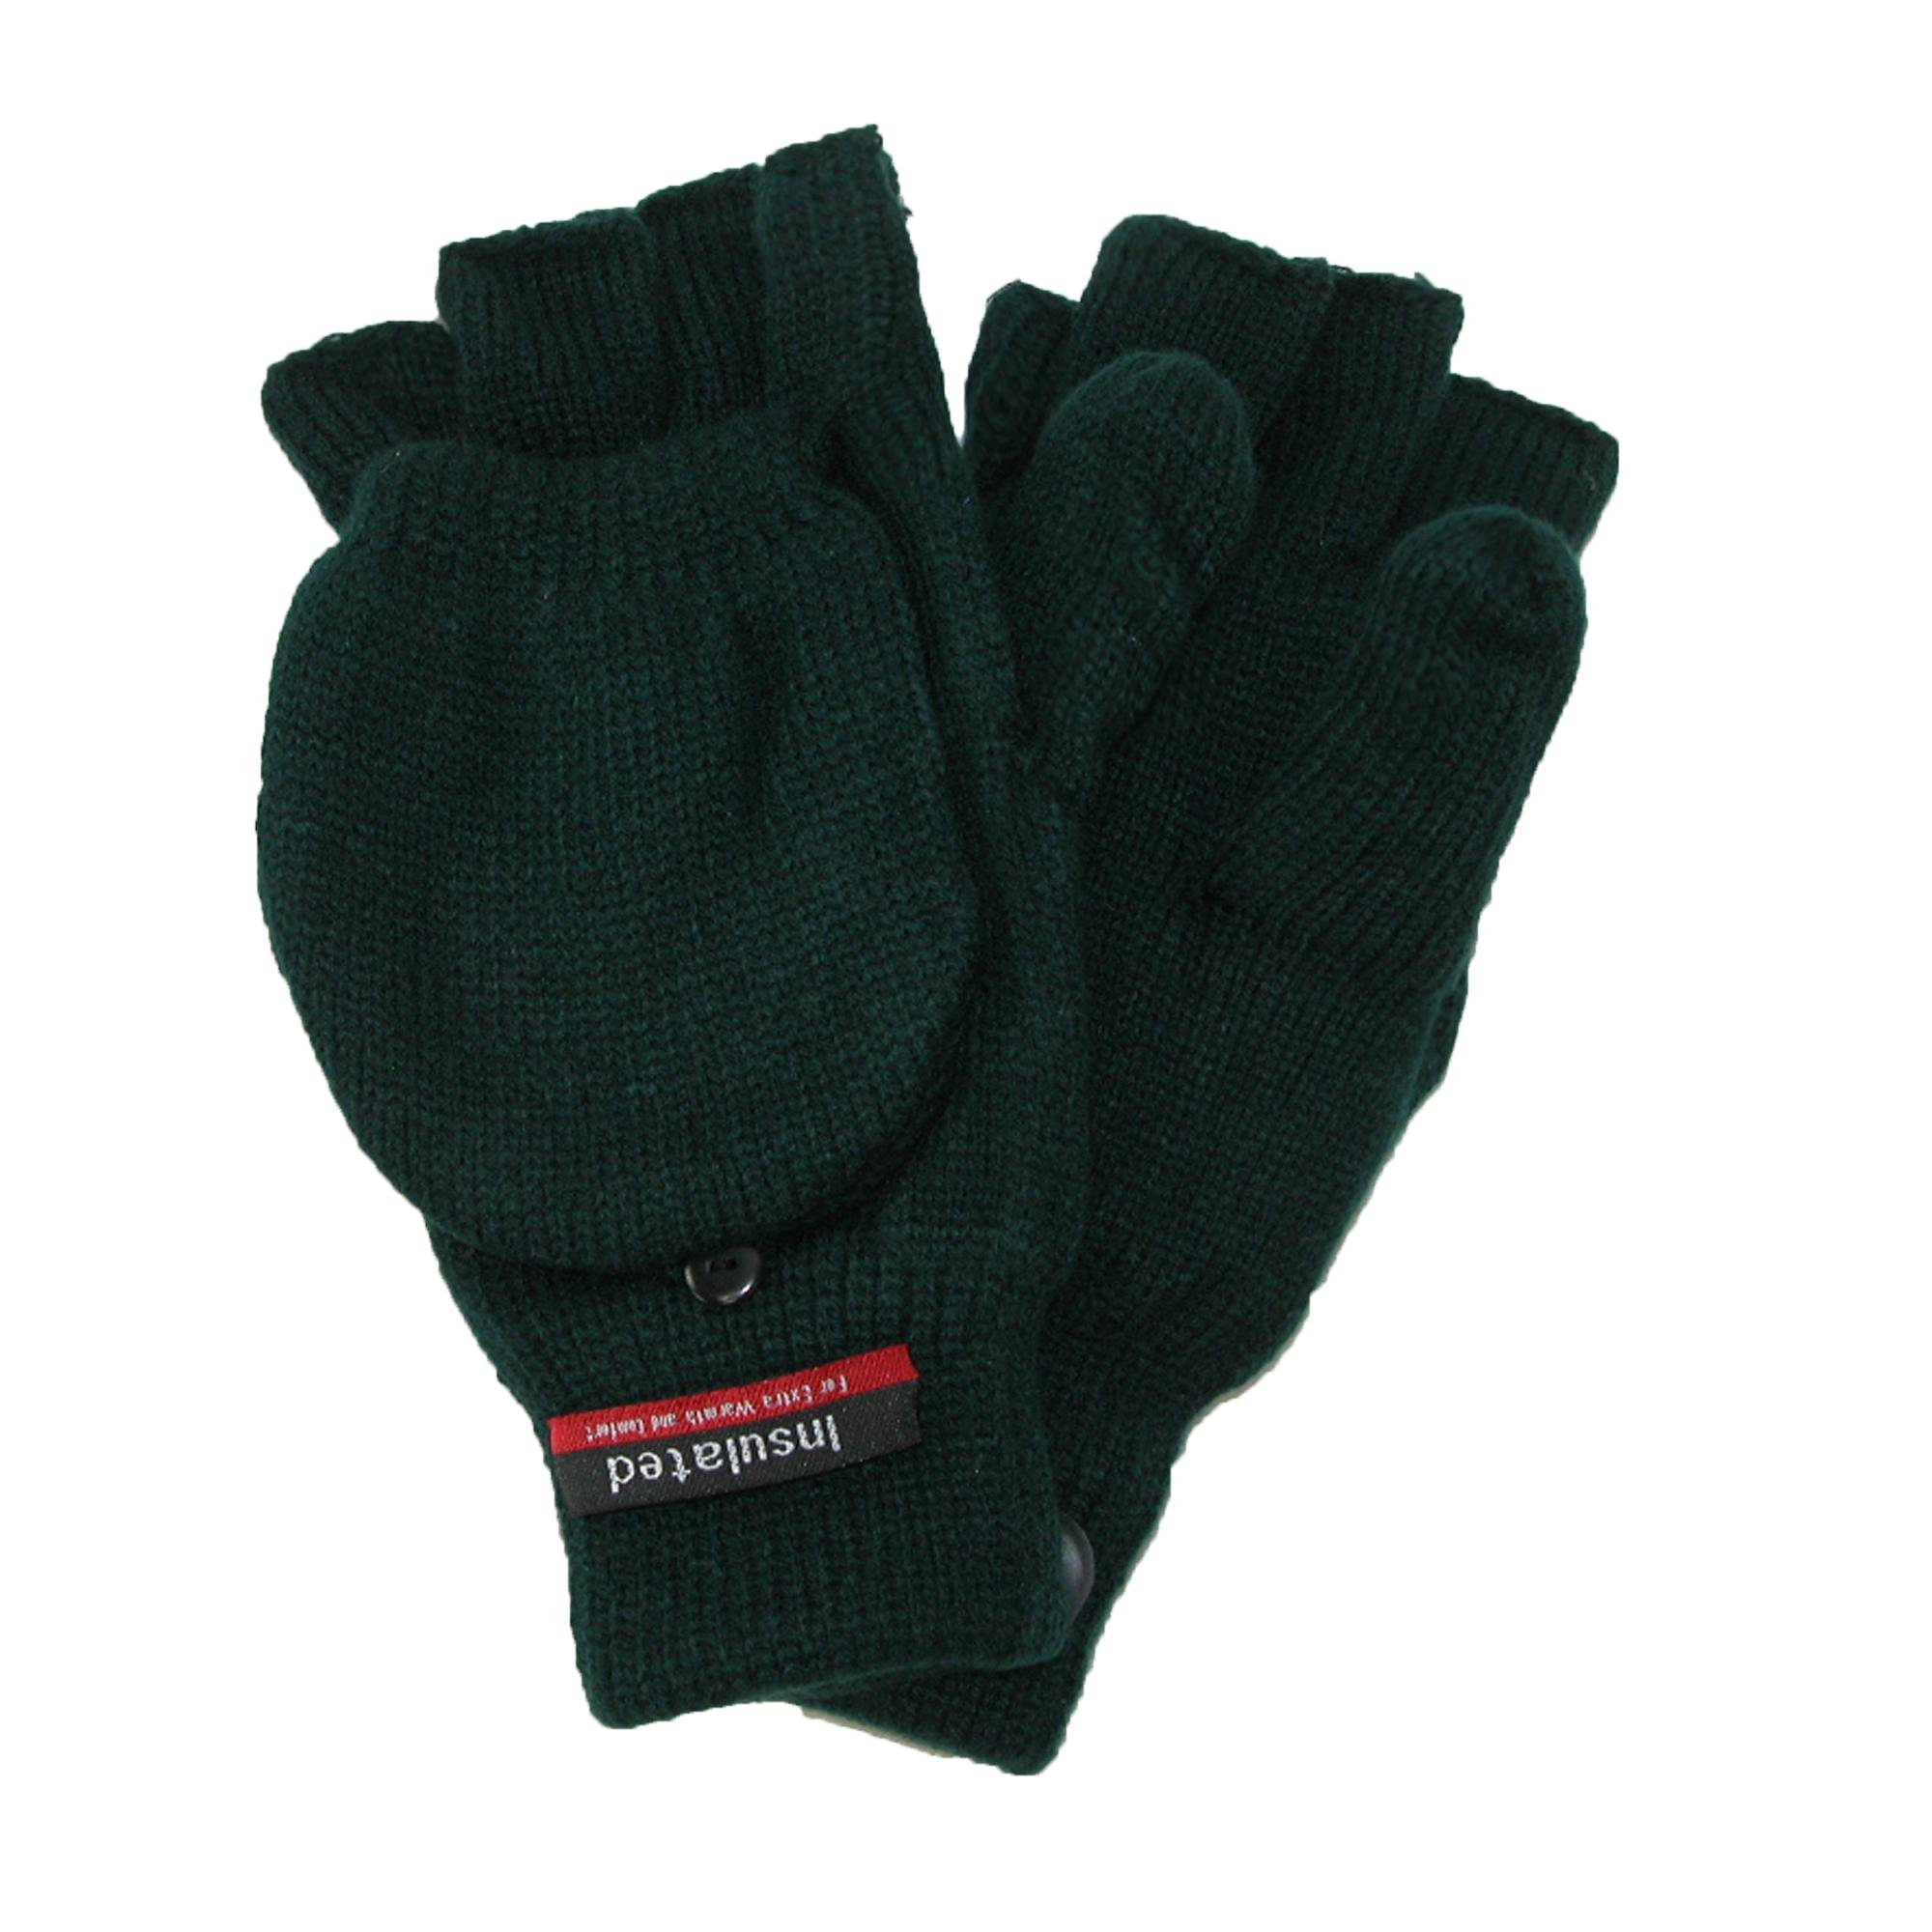 CTM Men's Knit Flip Top Insulated Gloves, Green